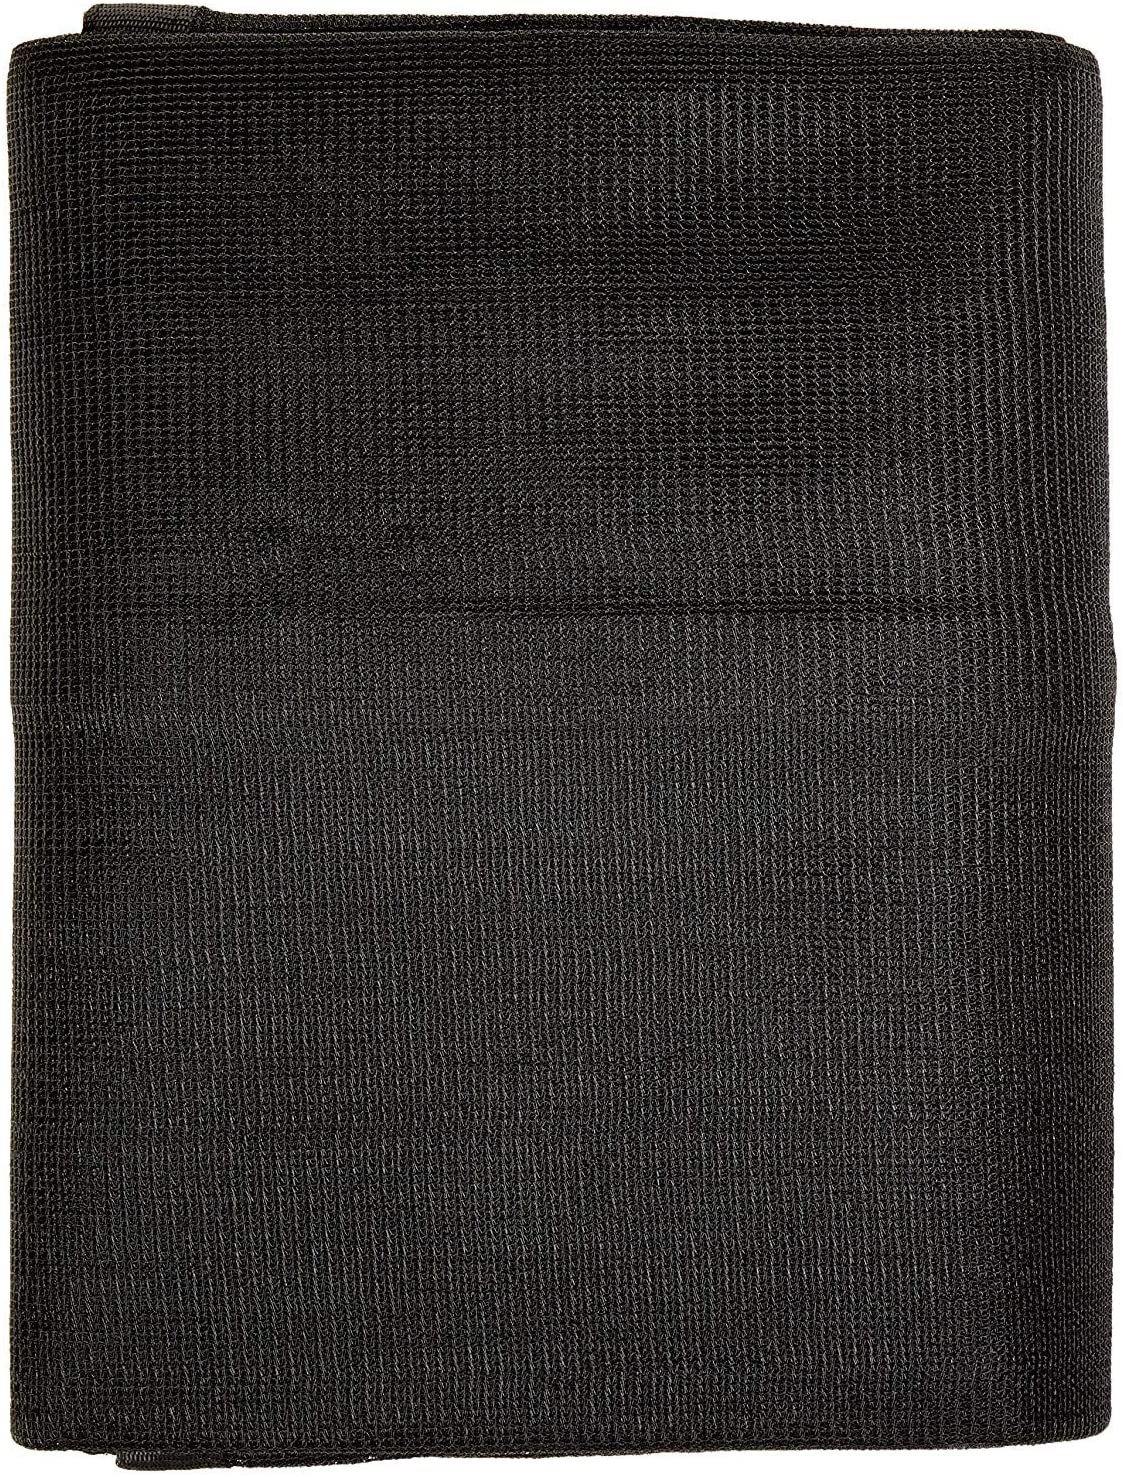 Windscreensupplyco Heavy Duty Black Knitted Mesh Tarp with Grommets 60-70% Shade (16 FT. X 24 FT.)